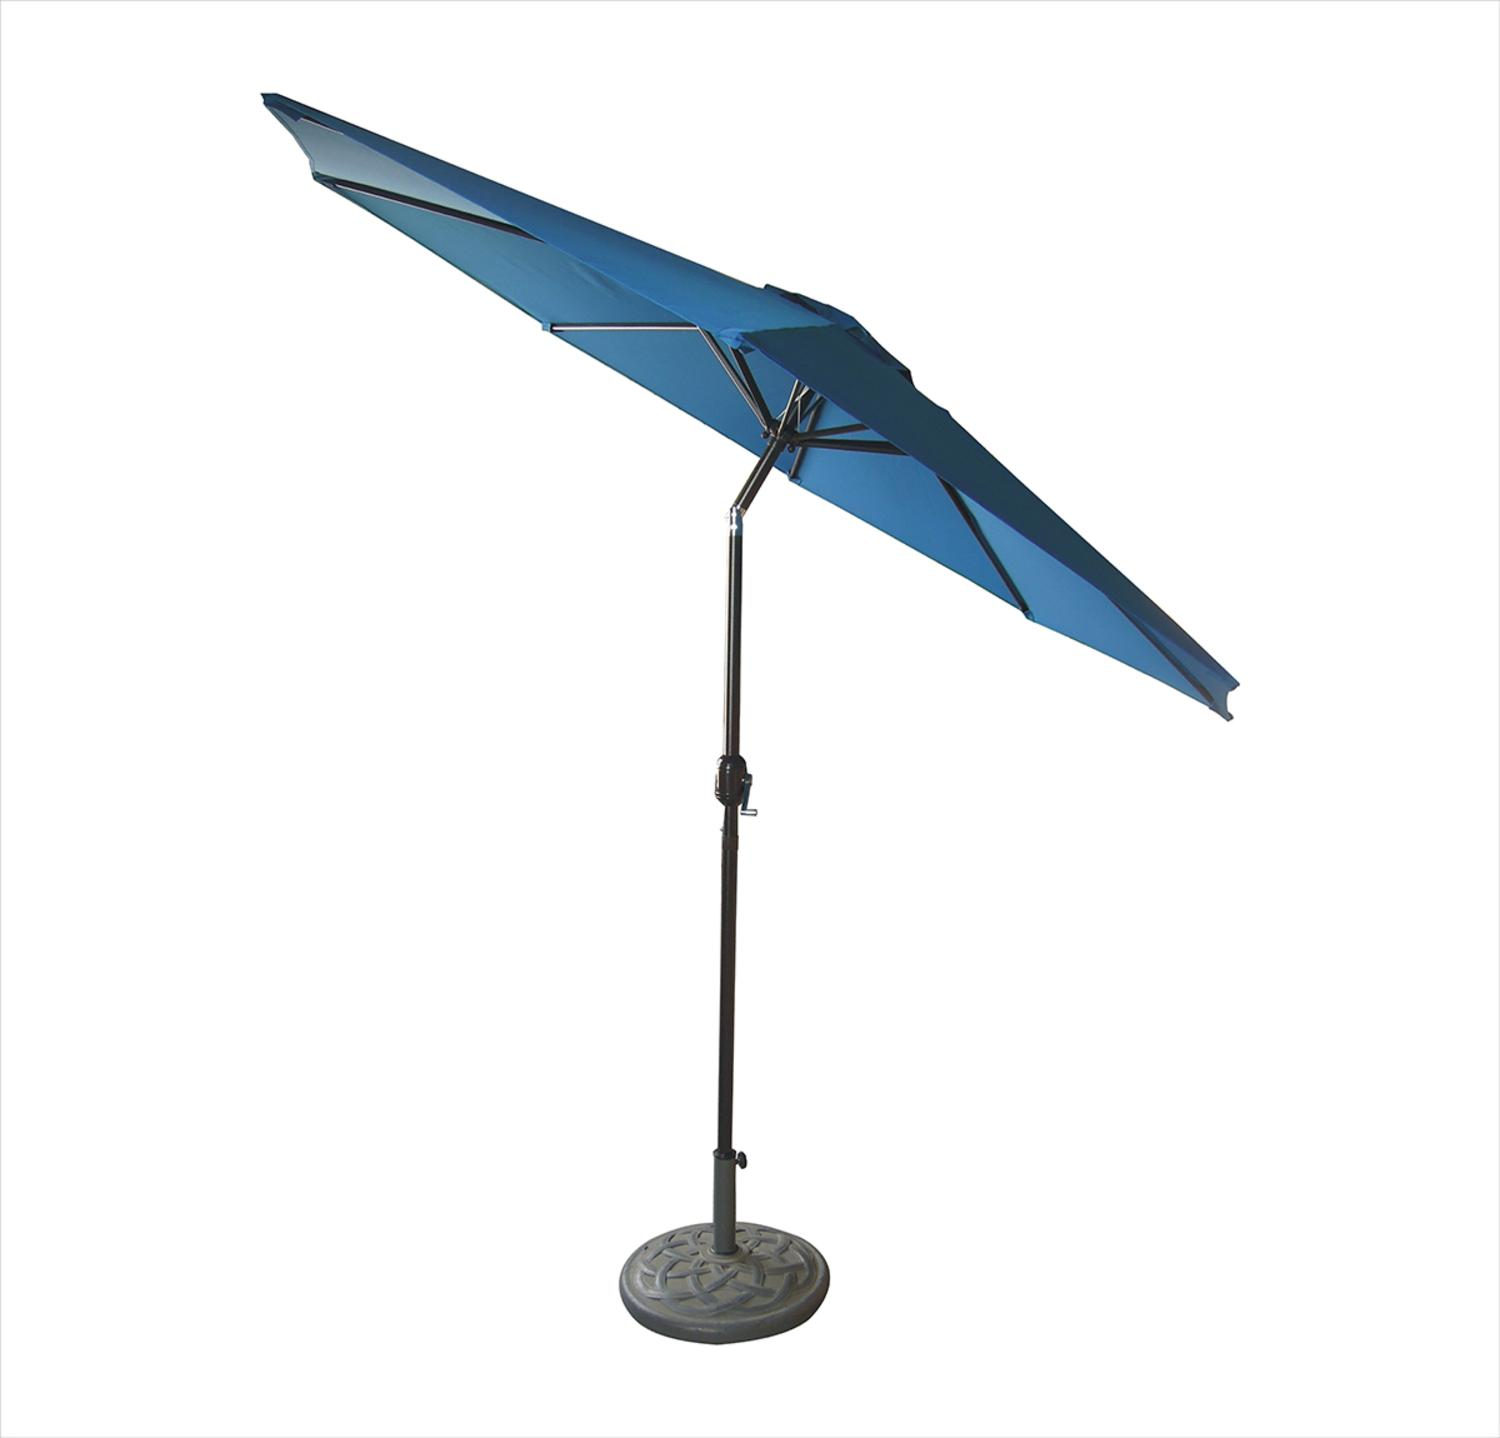 9u0027 Outdoor Patio Market Umbrella With Hand Crank And Tilt   Cobalt Blue